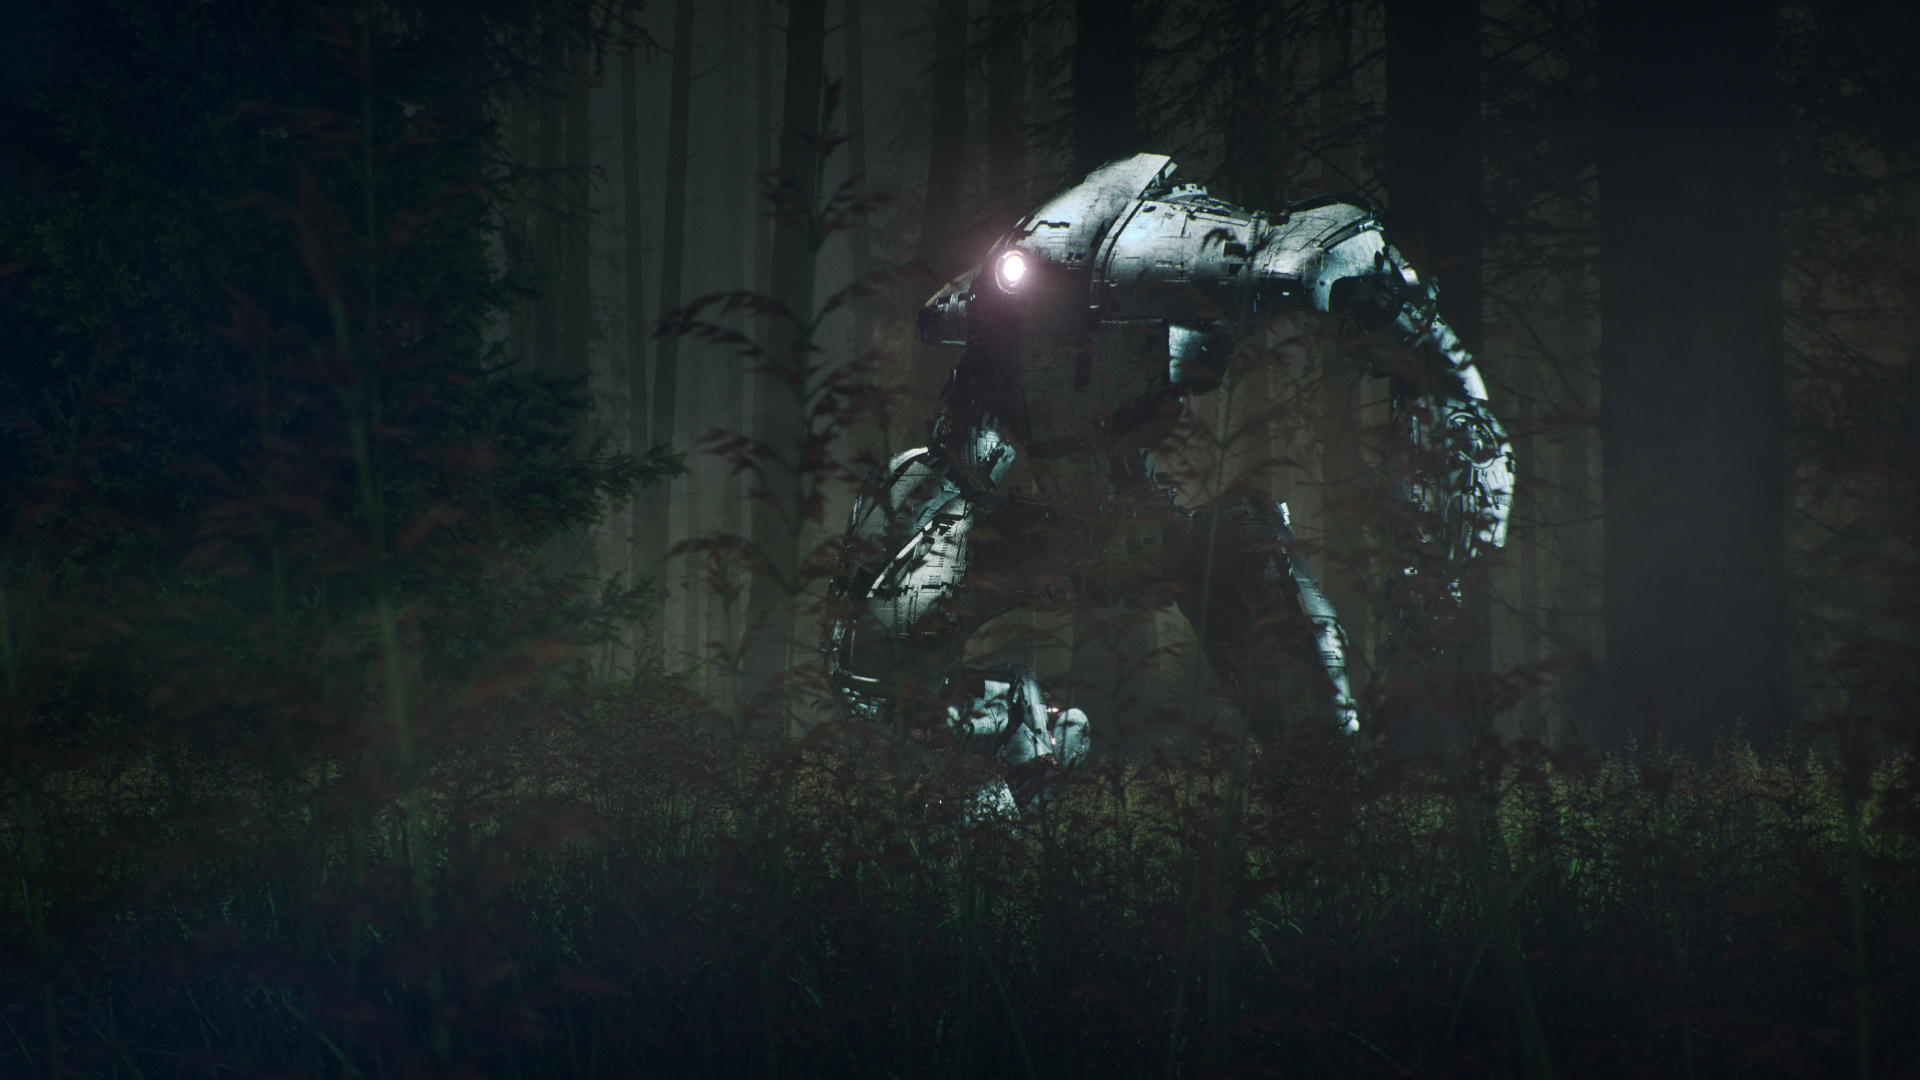 07.20 Octane Render. Into the Woods we go... Mech M-6k provided by Comrade1280 via Sketchfab (though I mucked up the textures). Trying Octane Scatter for the grass - works a treat.